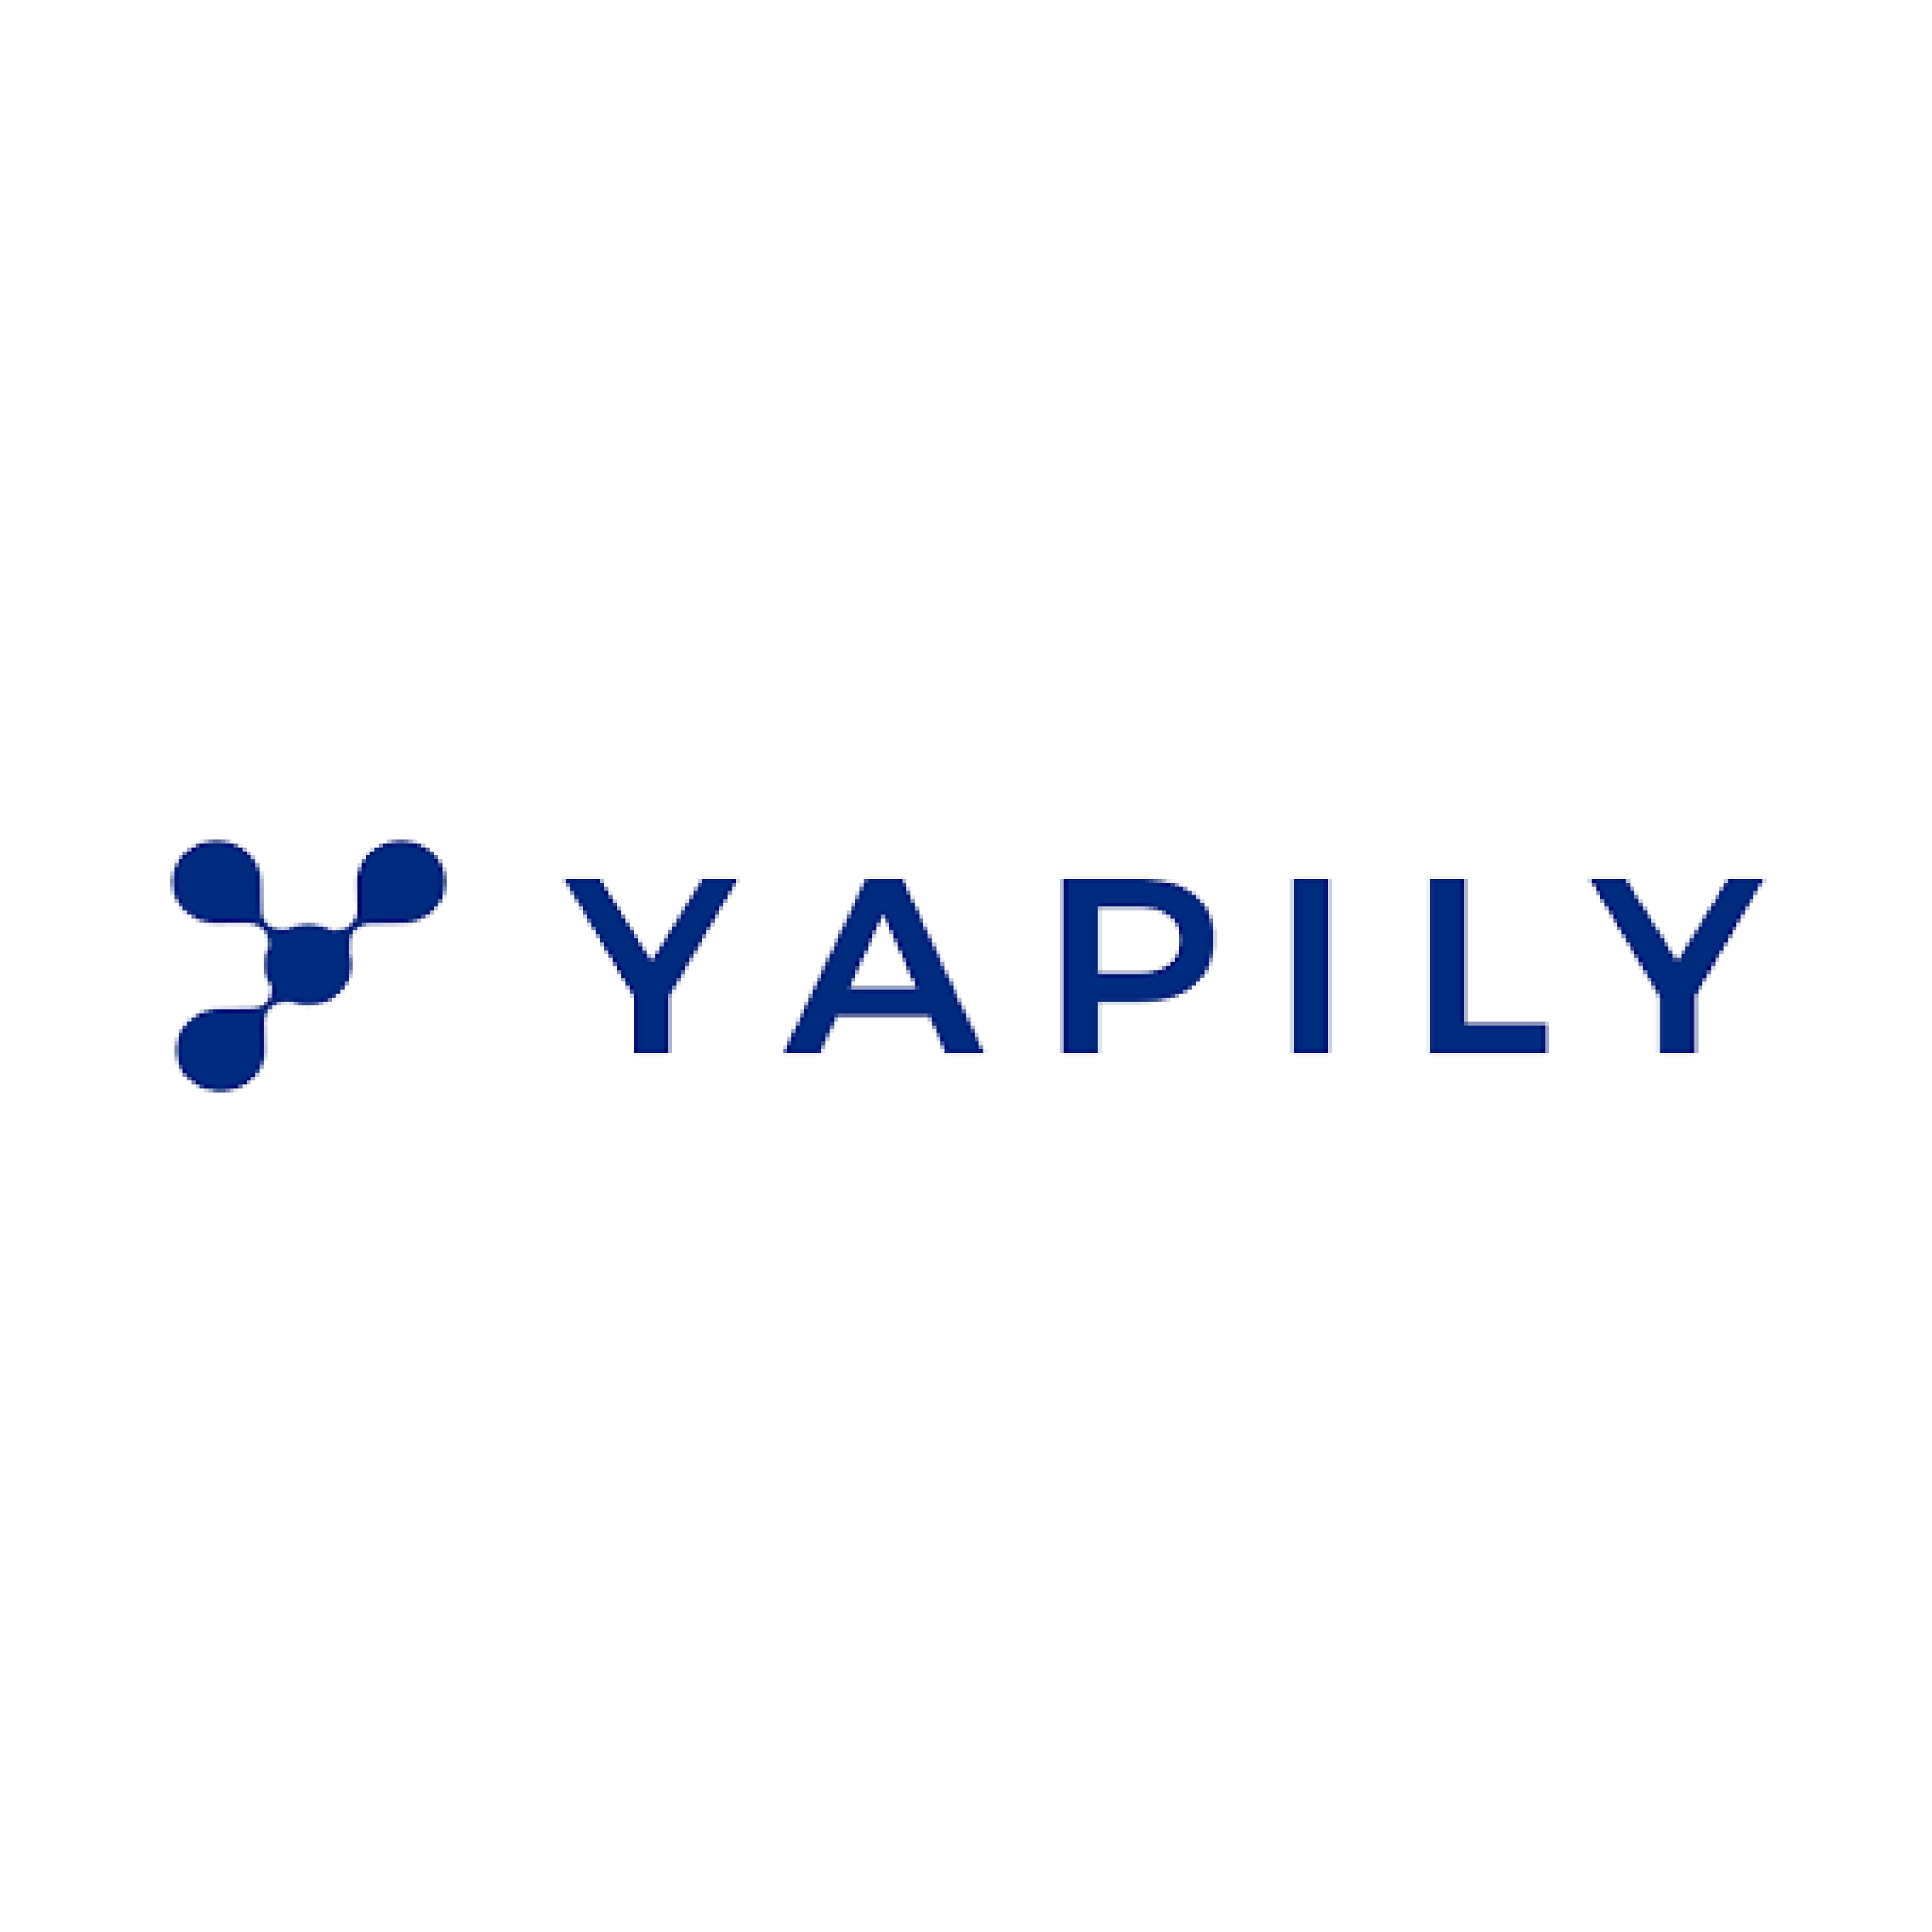 yapily.png